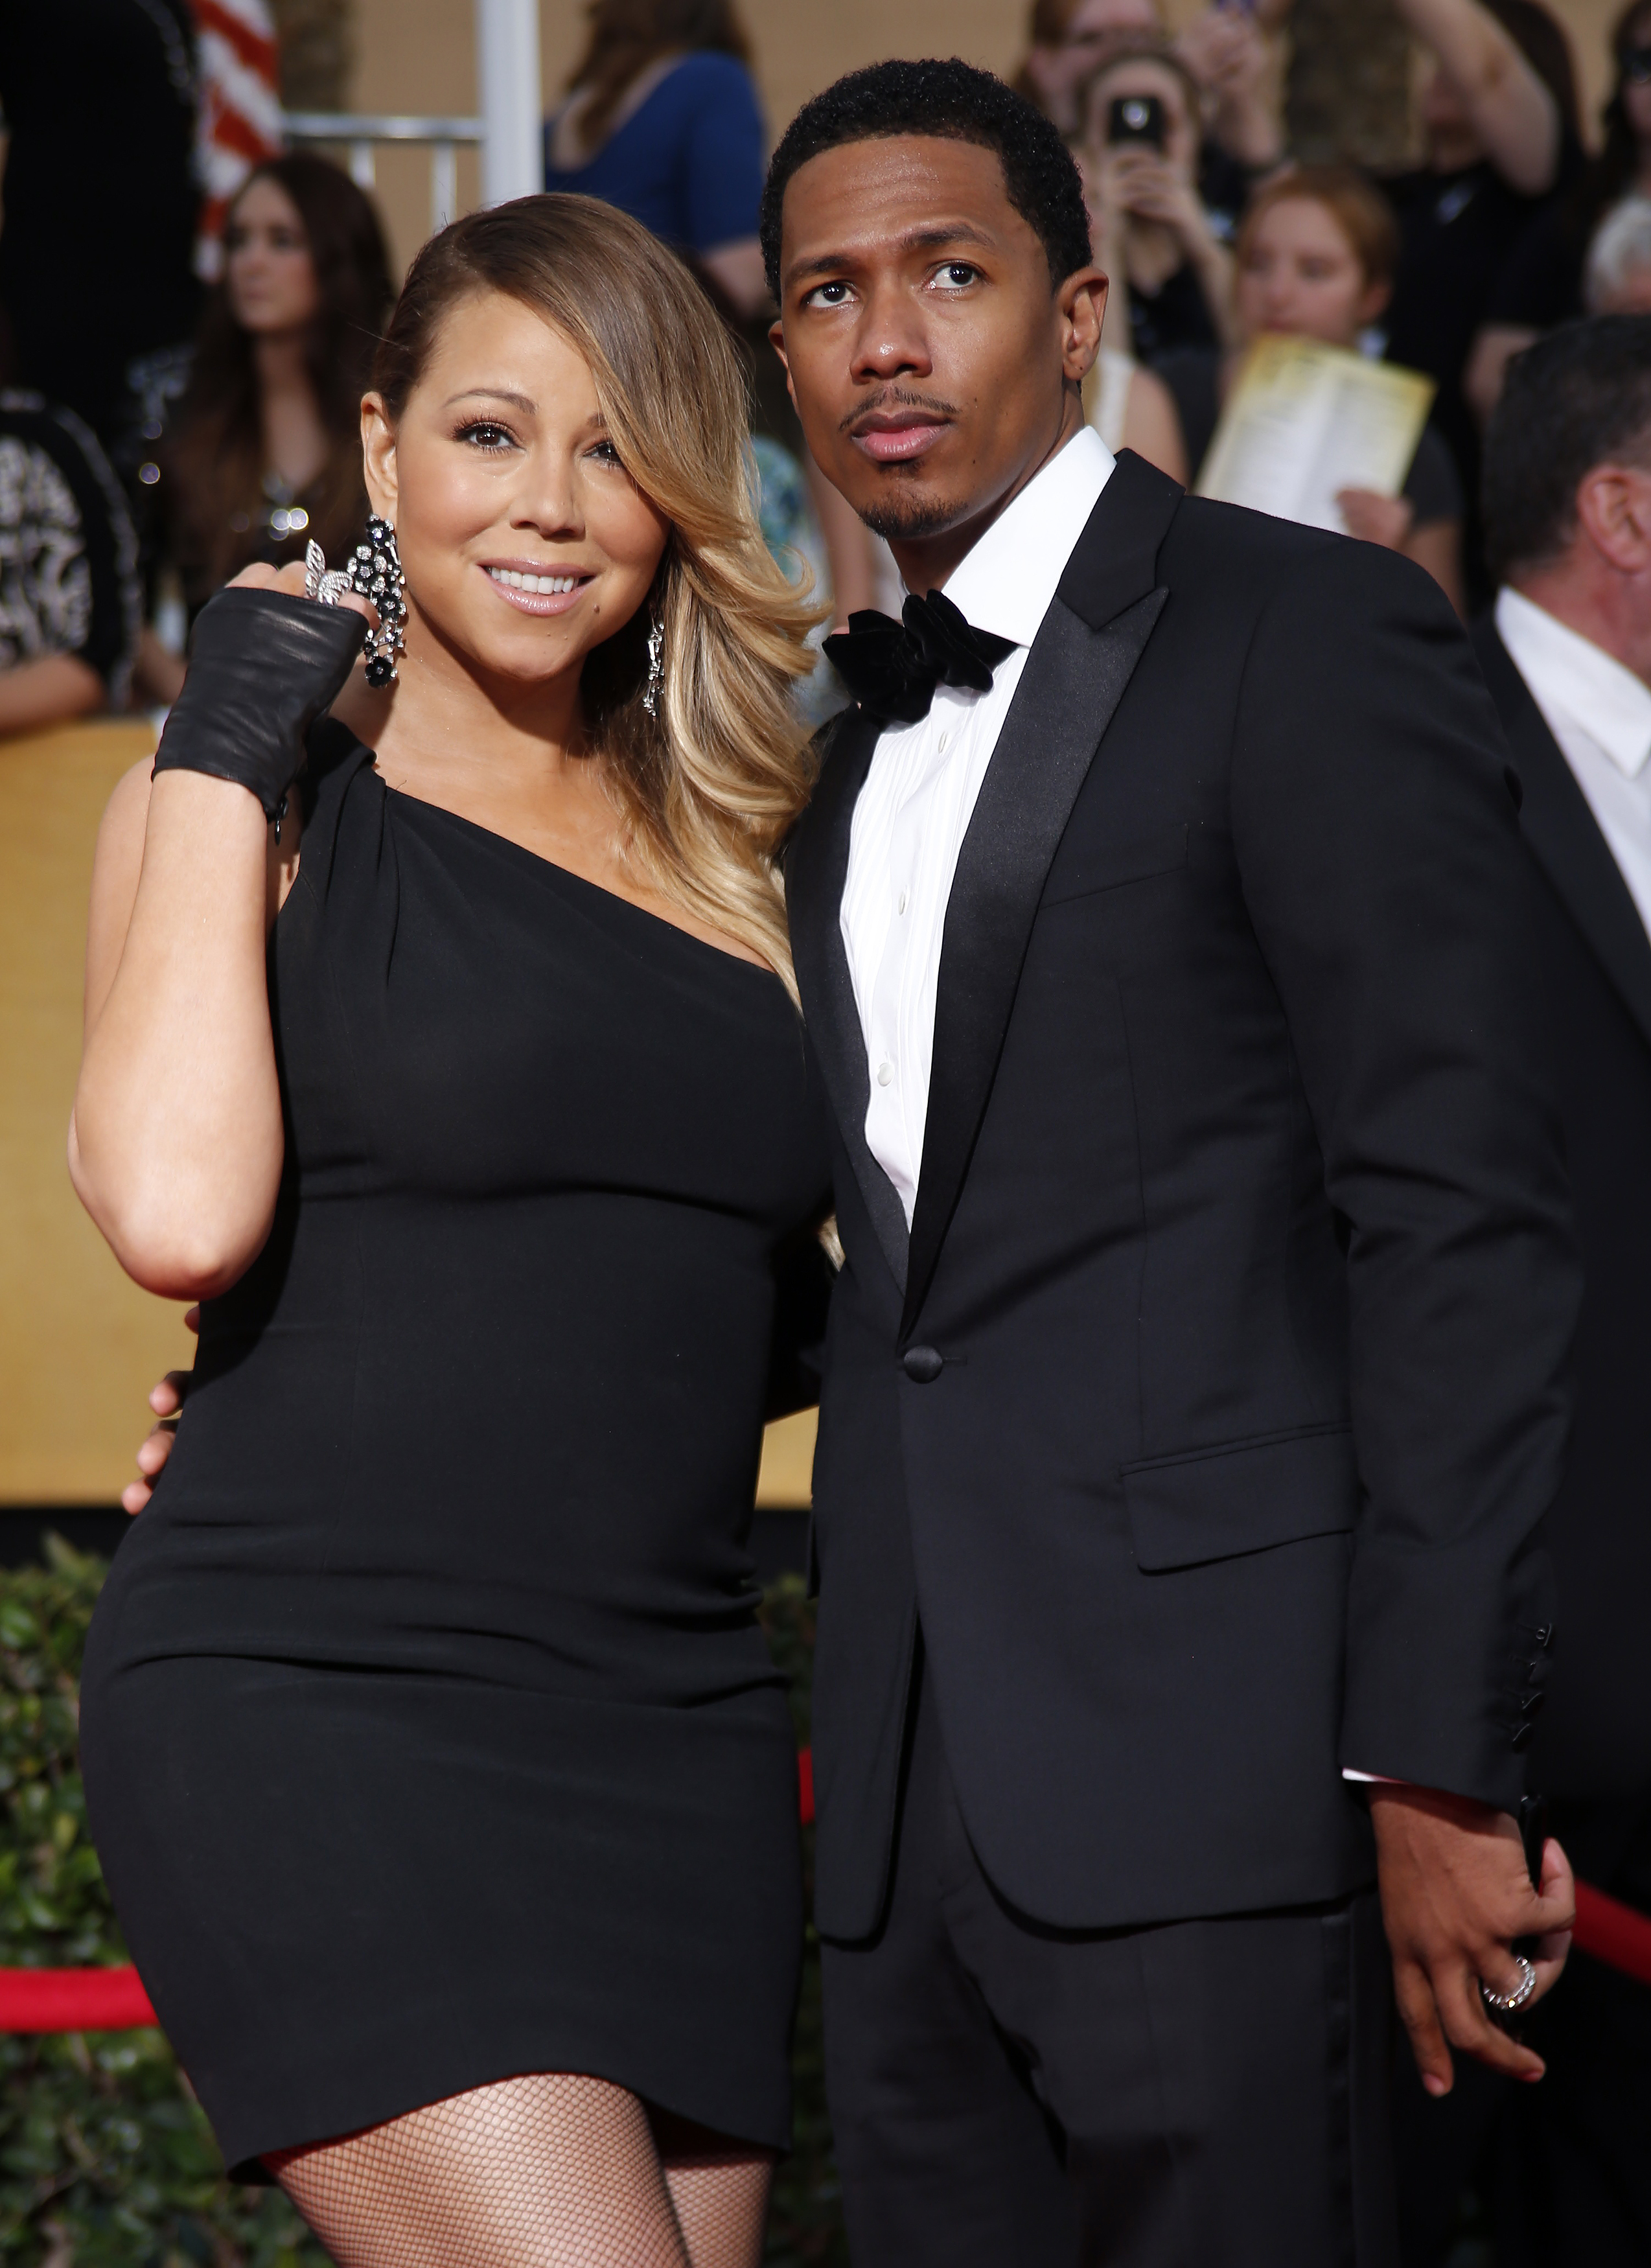 Nick Cannon Cheated on Wife Mariah Carey With Two Women ...